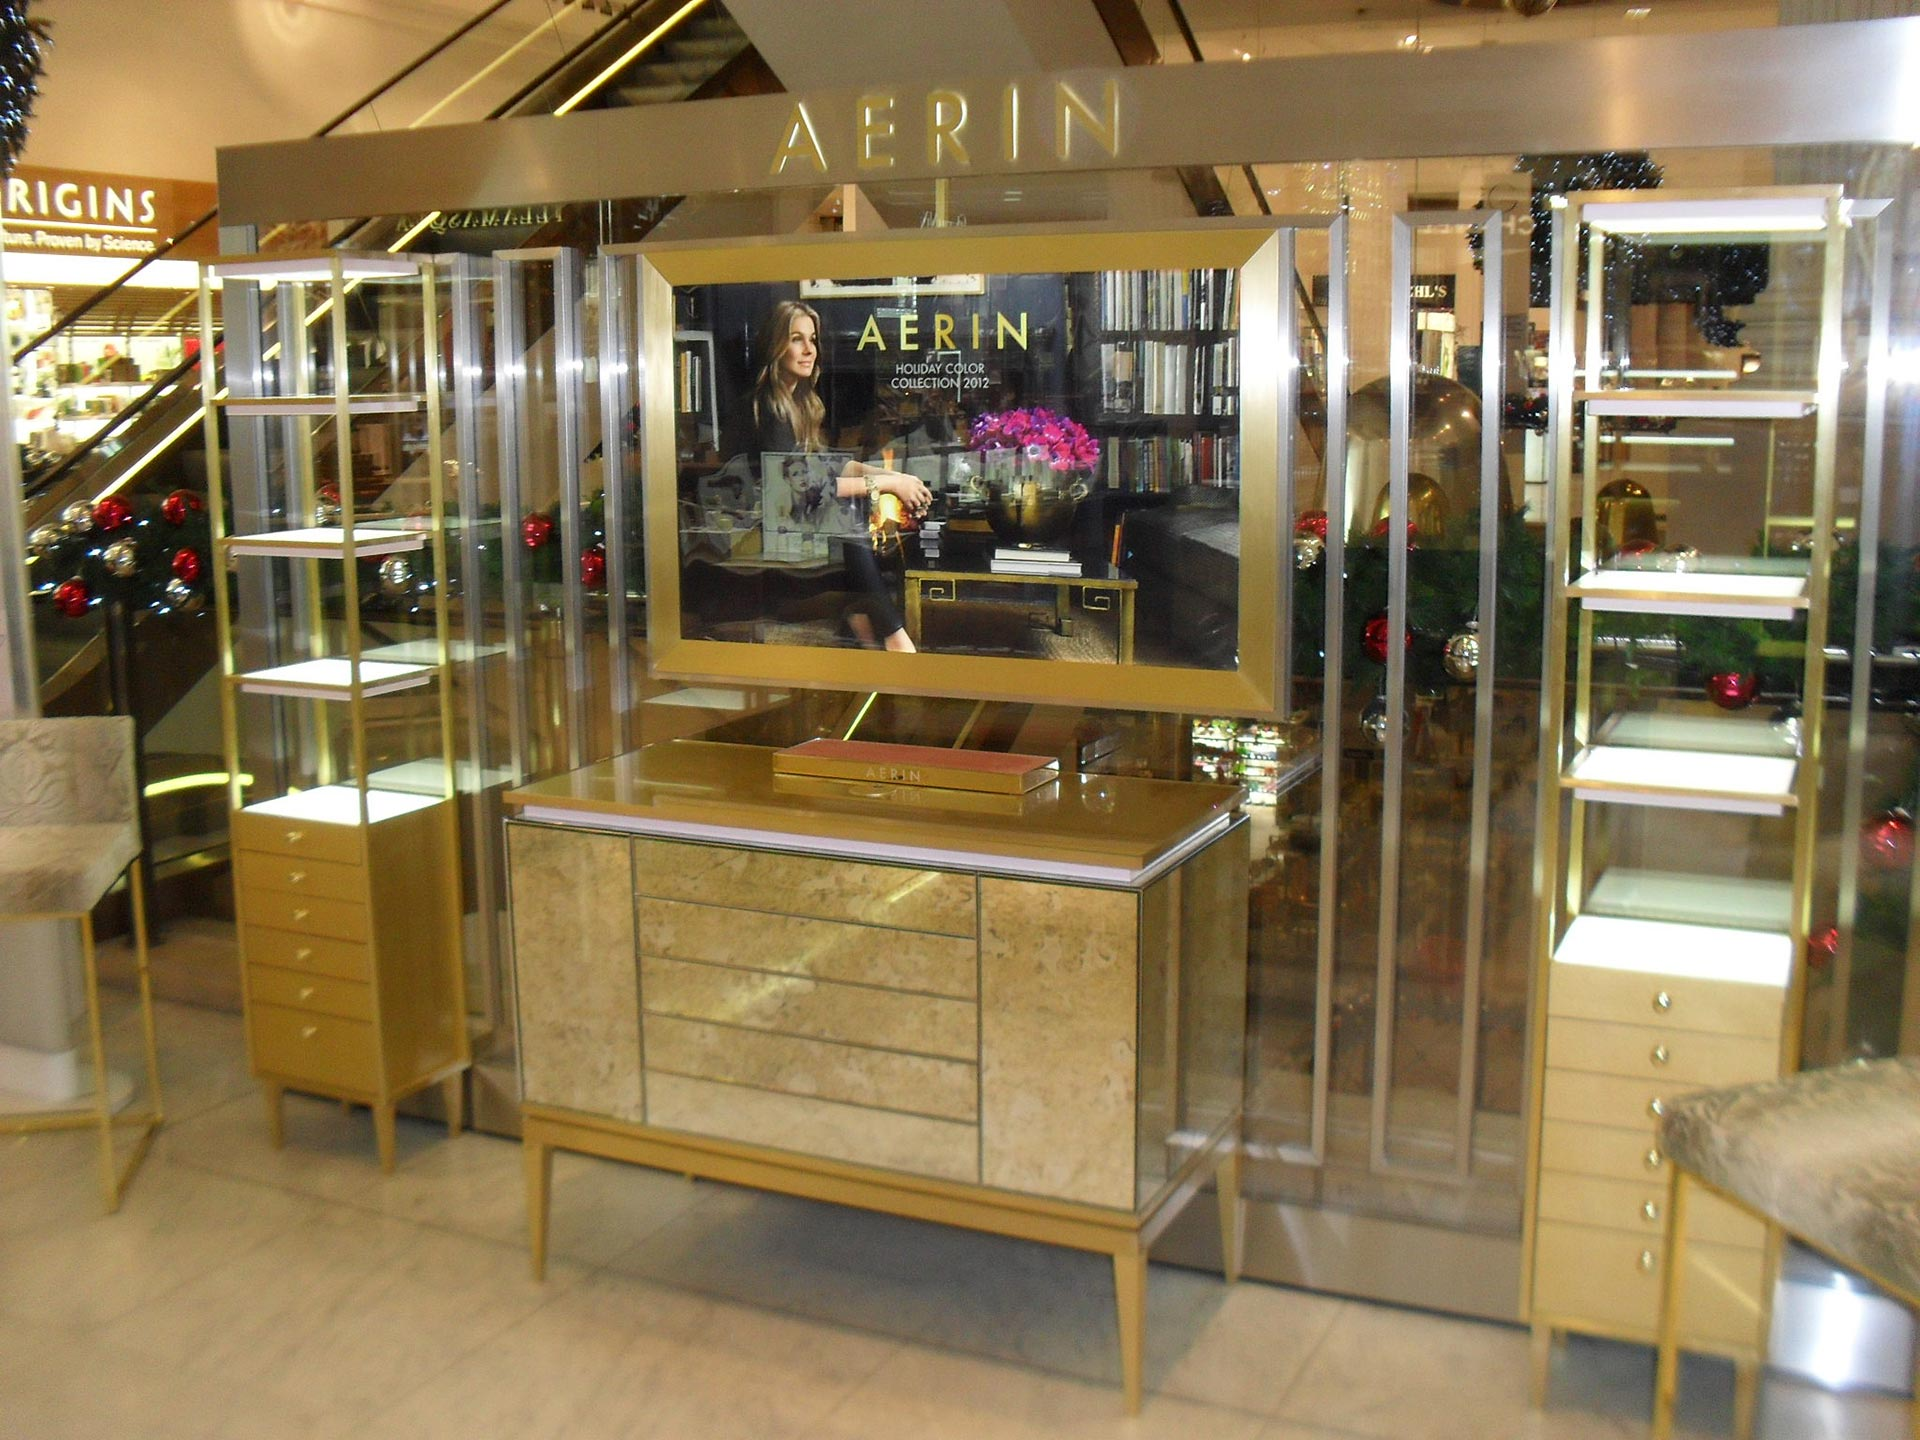 Aerinin-Selfridges-Oxford-Street-01